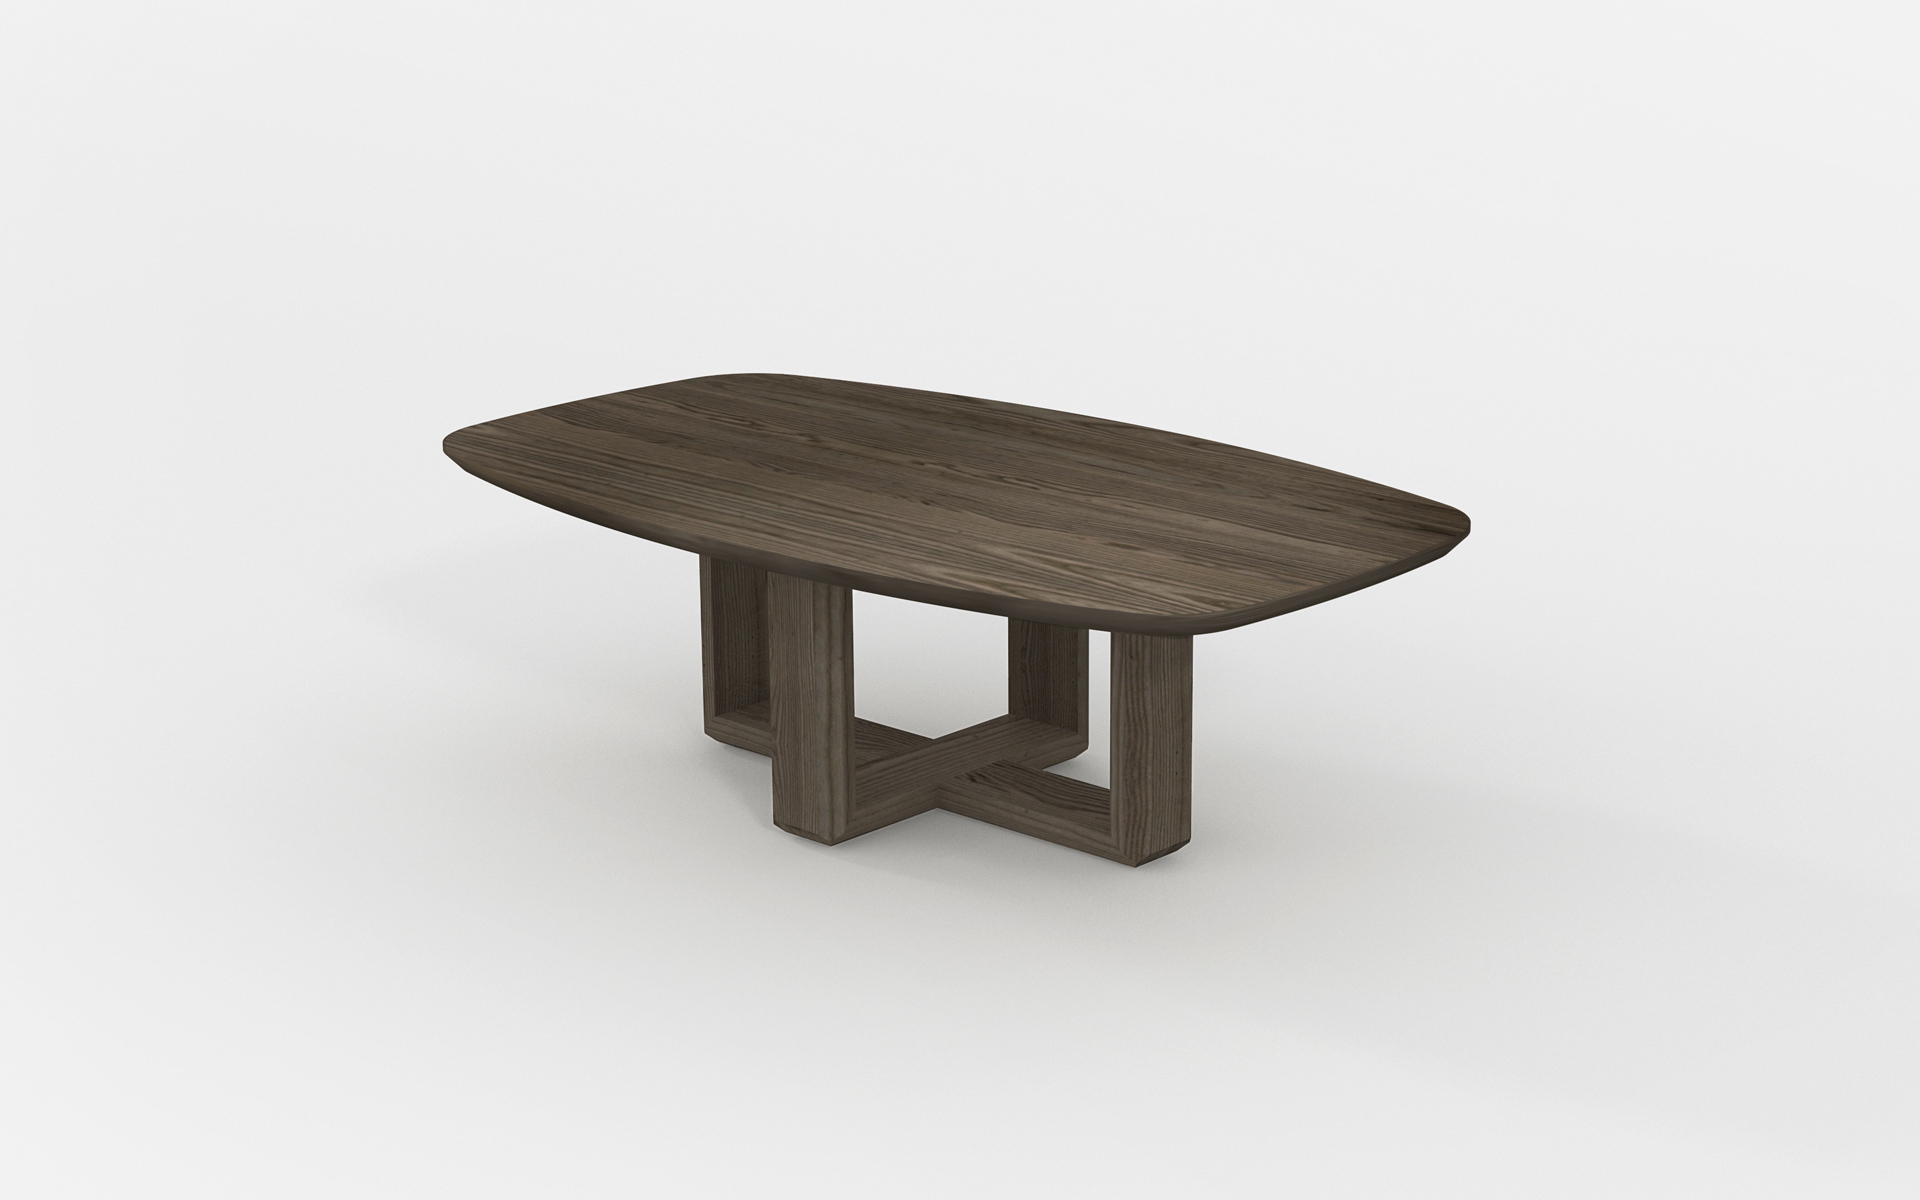 KS35 coffee table